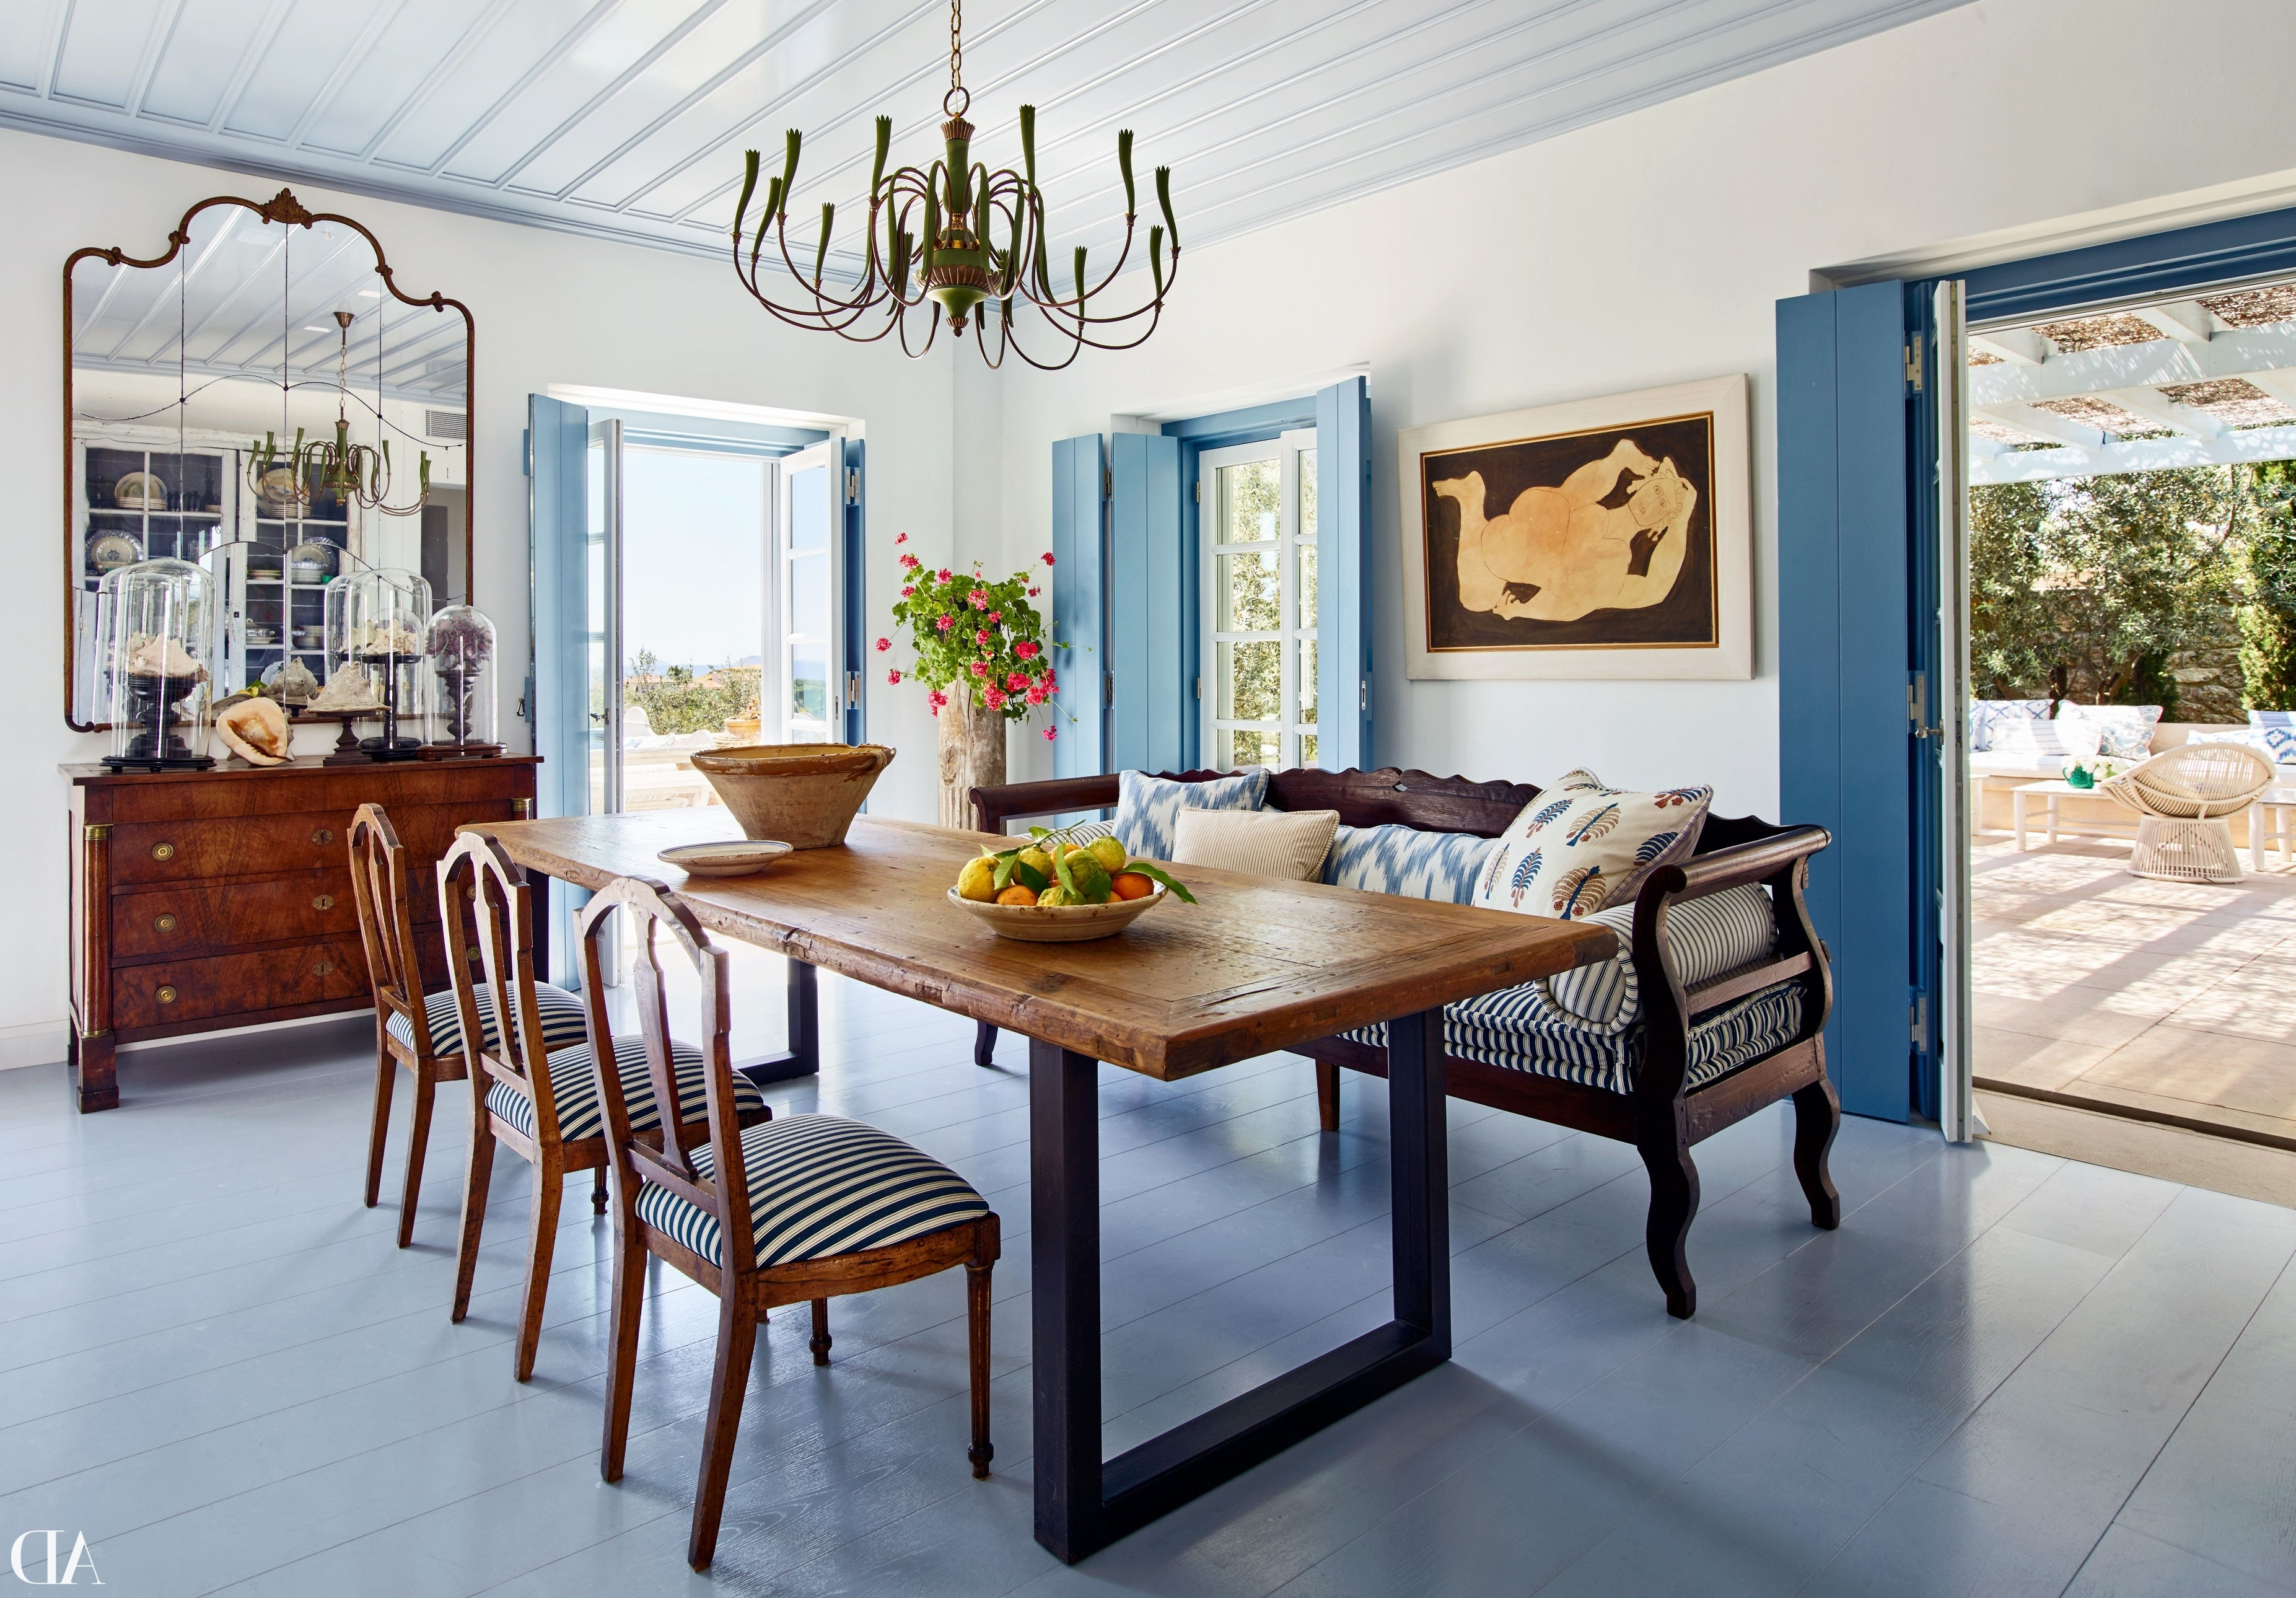 Dining Room Tables In Well Known Tips To Mix And Match Dining Room Chairs Successfully (View 15 of 25)